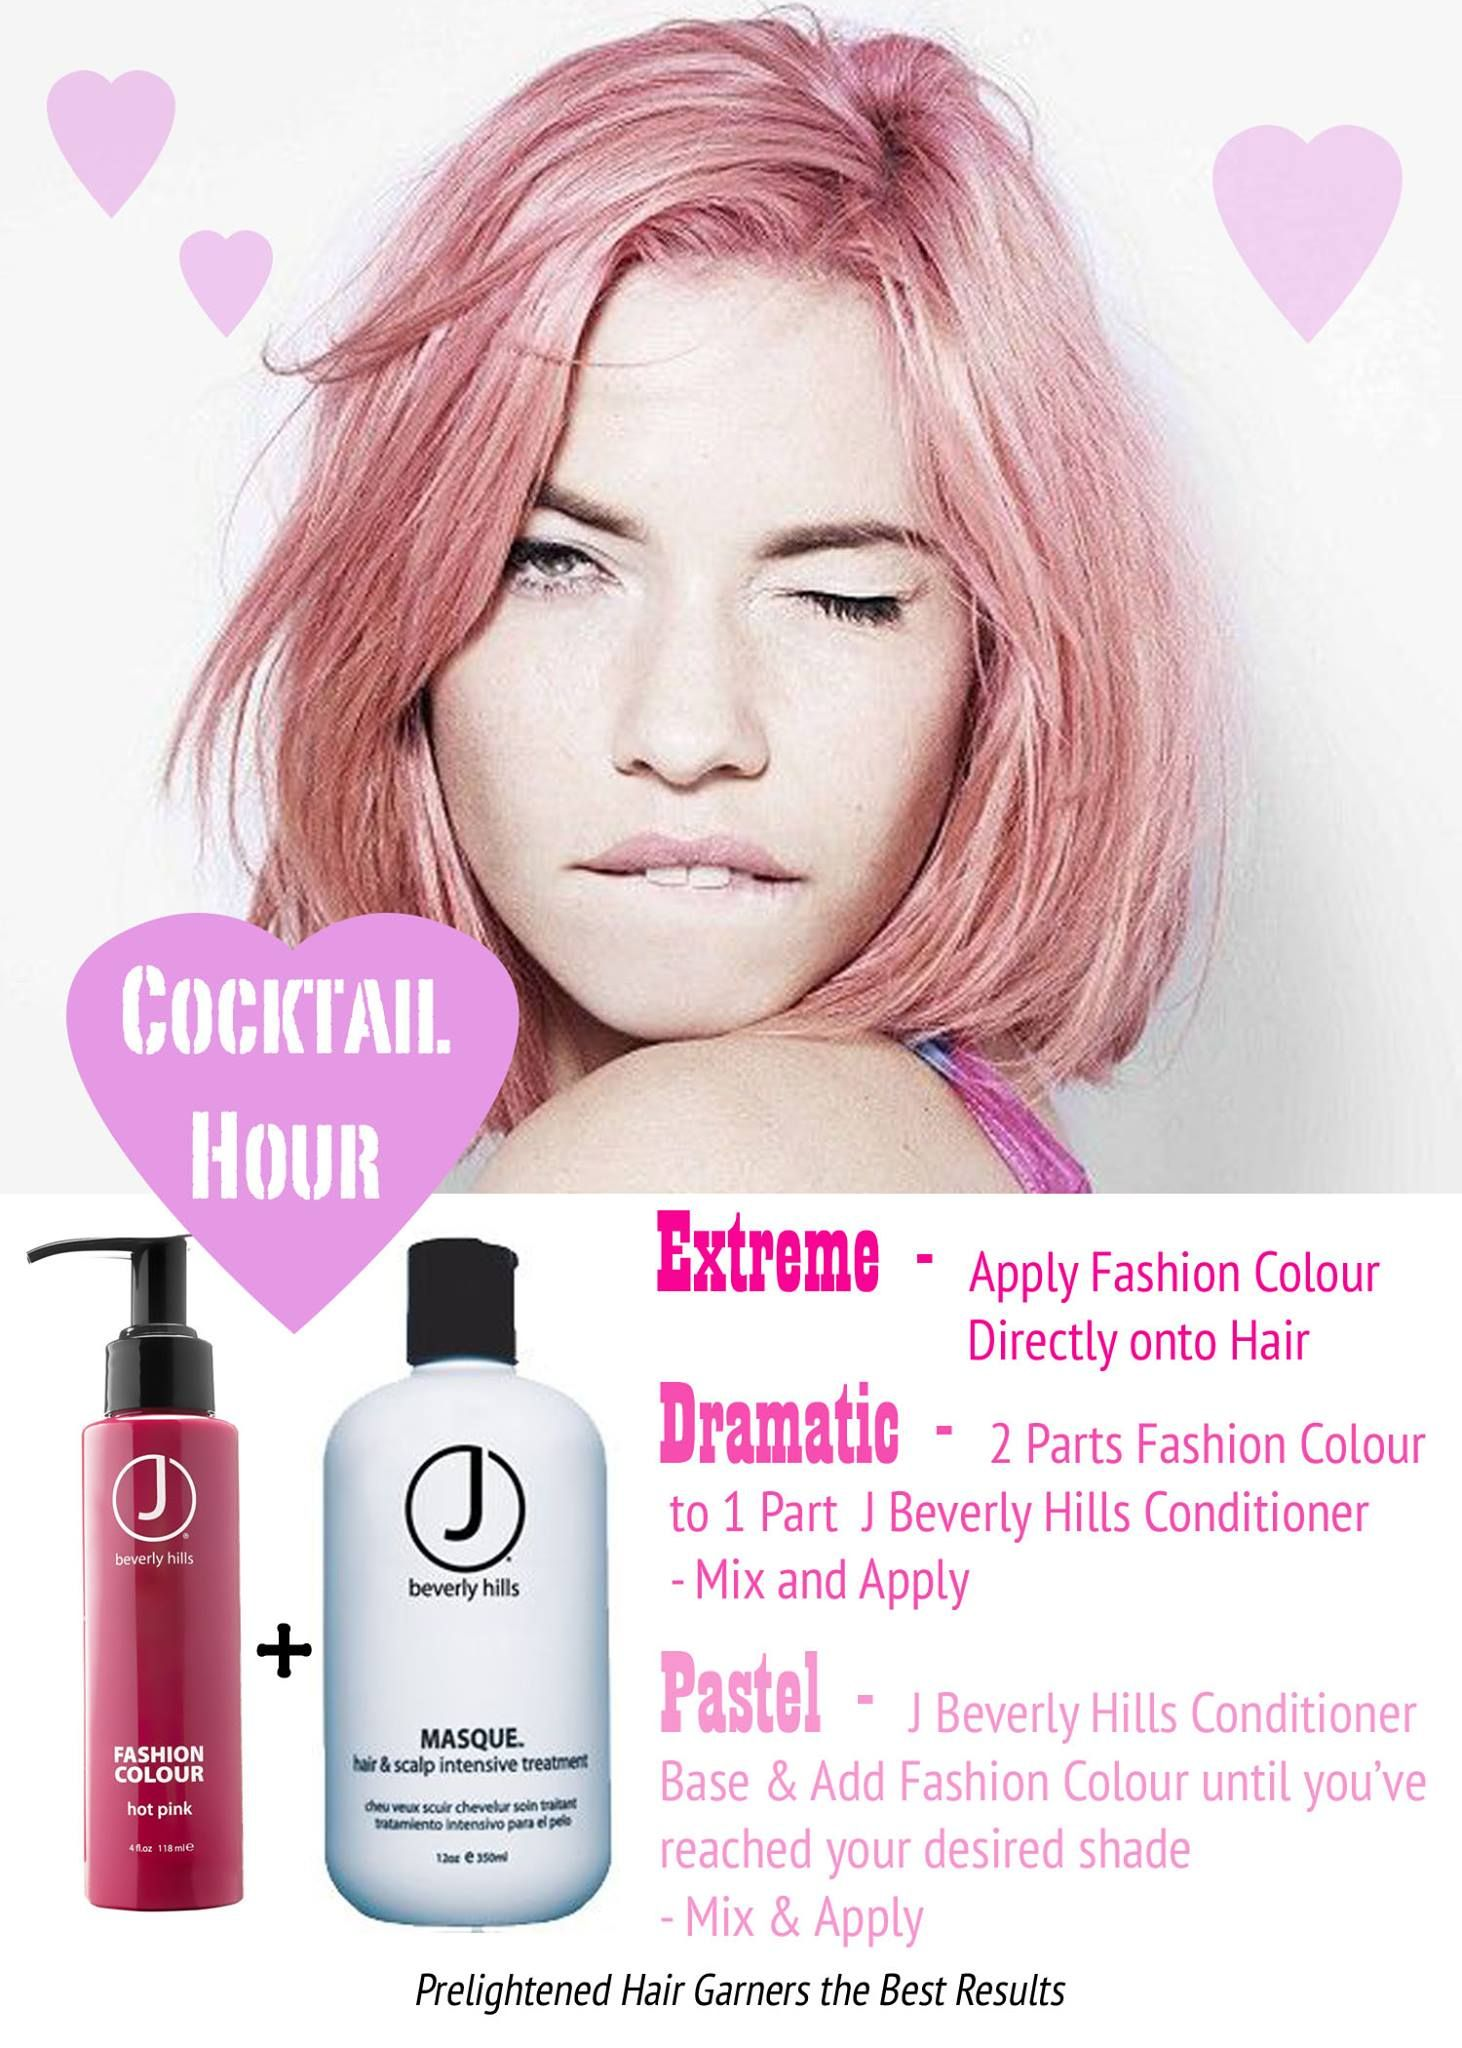 Make Any Shade Pastel With Mixing With Our Conditioner #Pastels